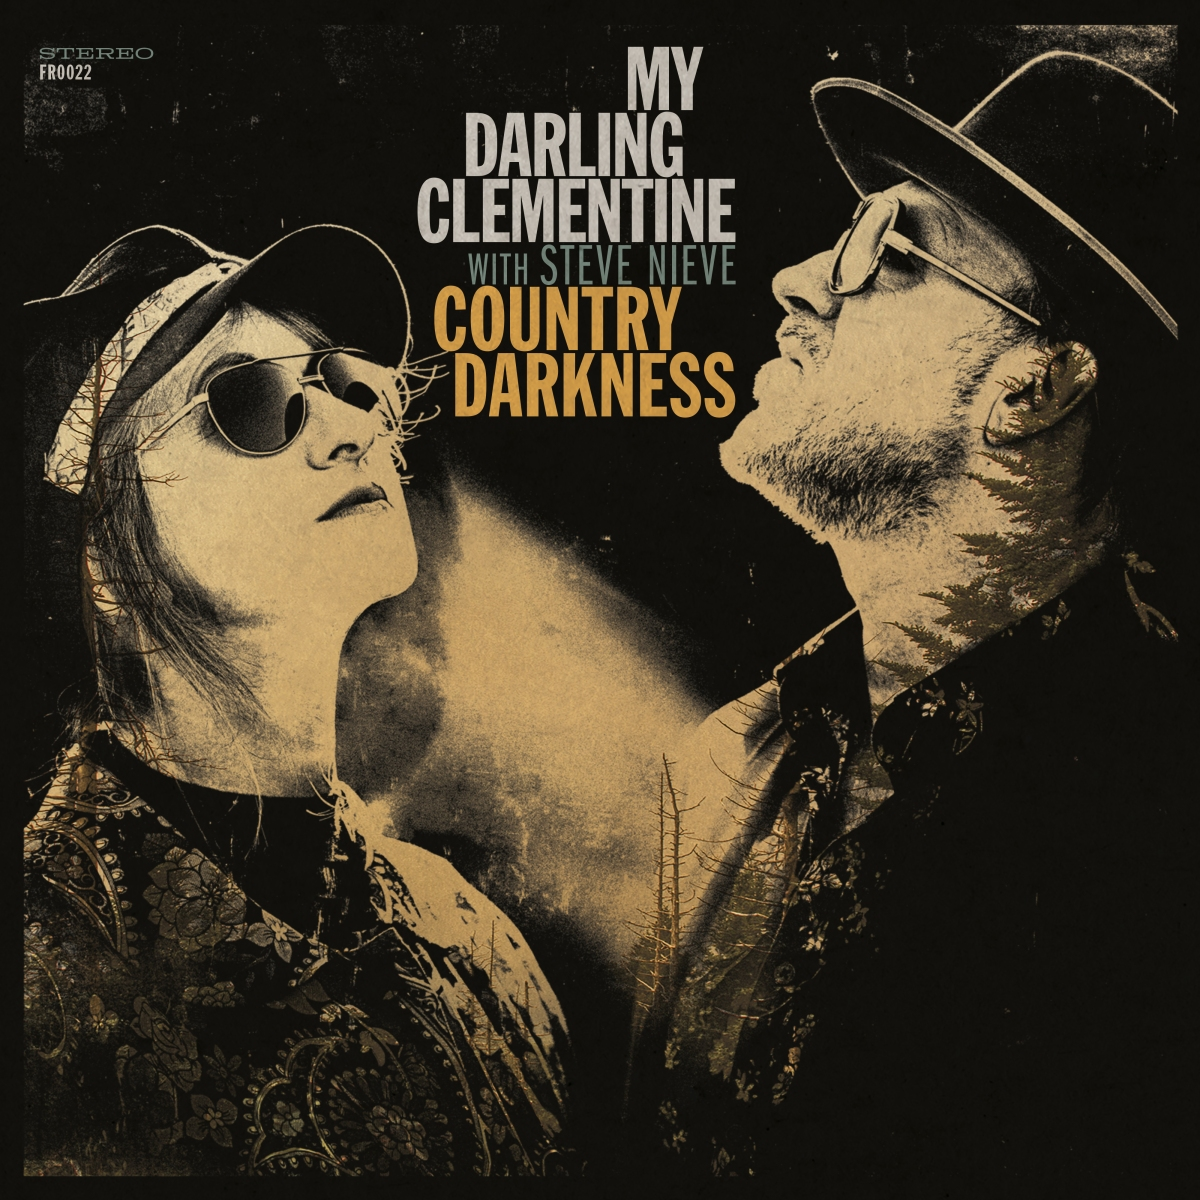 My Darling Clementine's Country Darkness